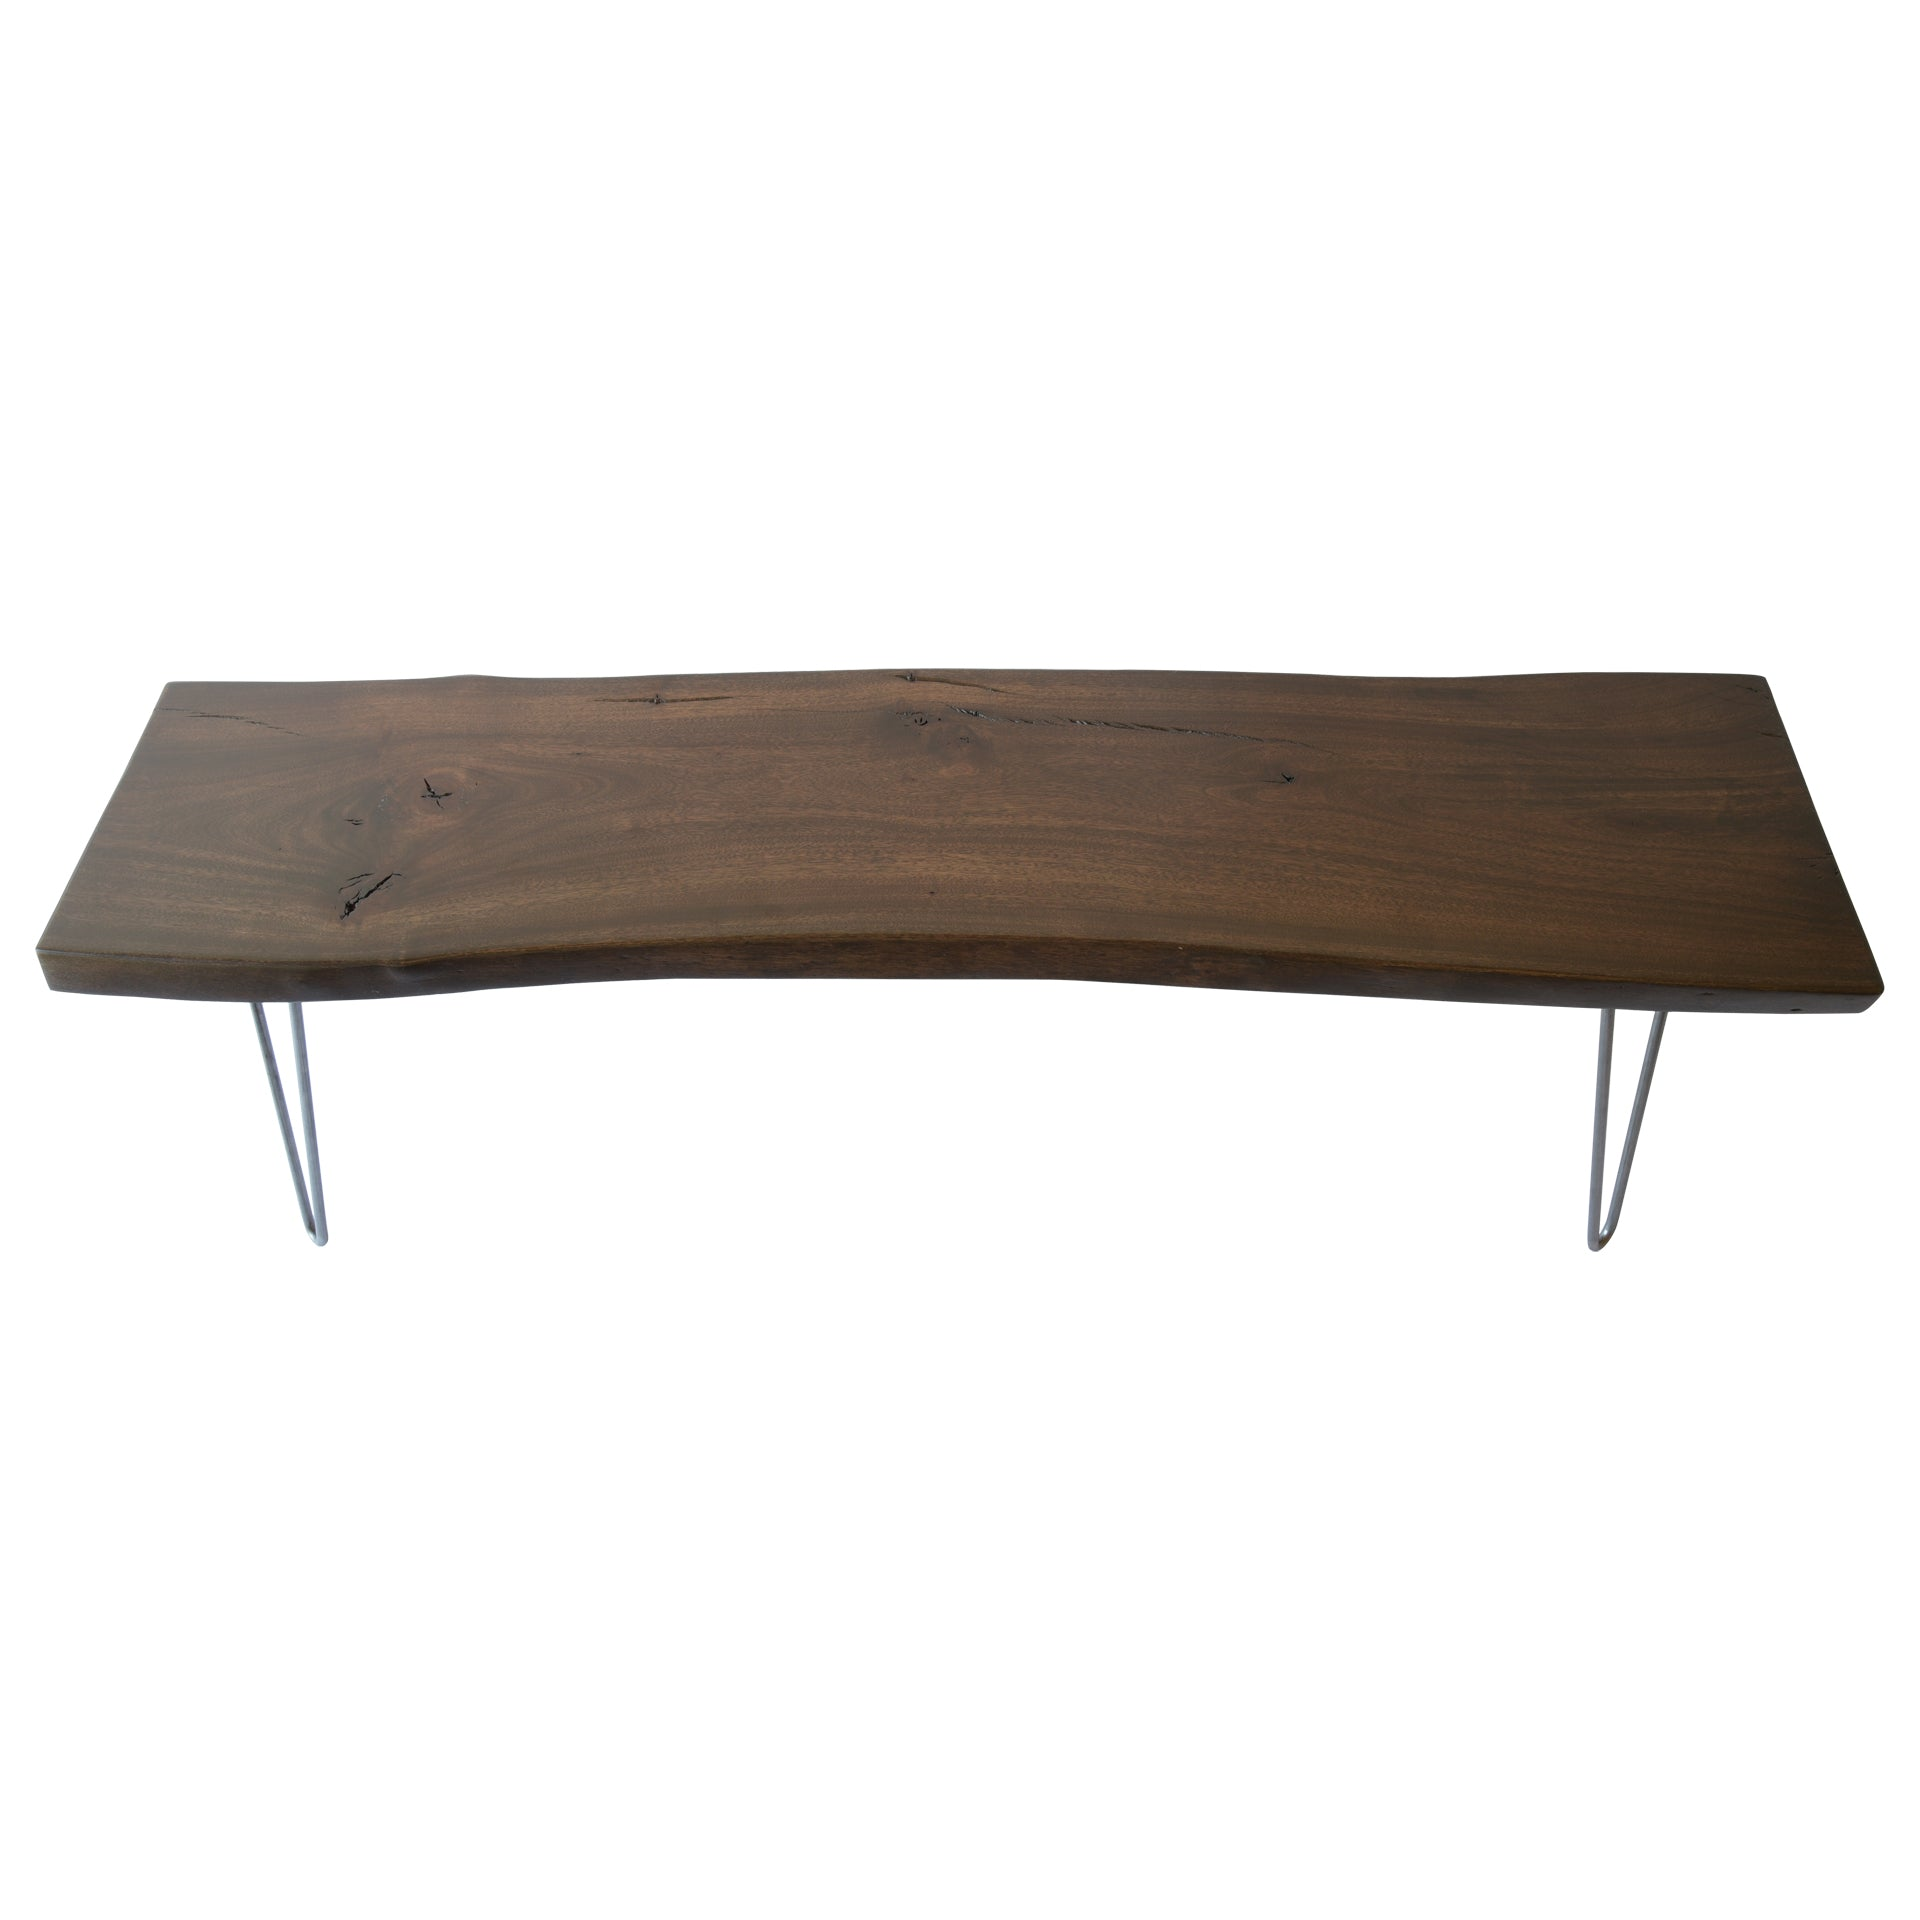 Dark Live Edge Slab Rustic Coffee Table